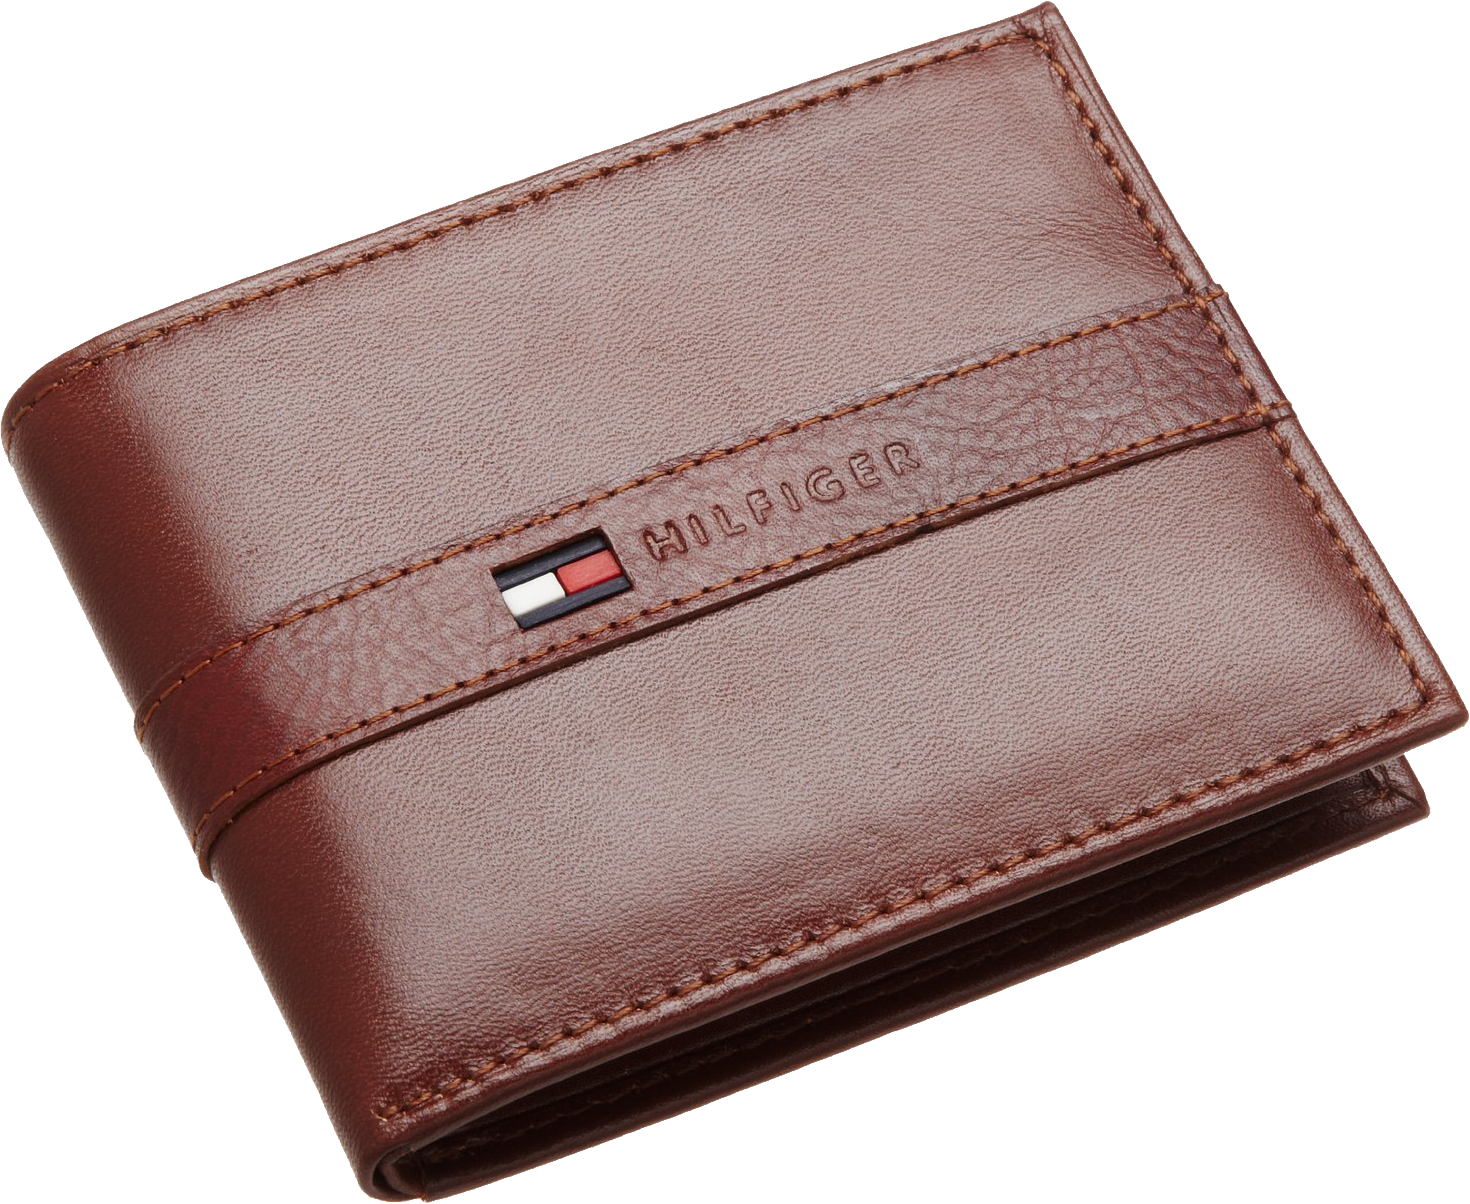 Chocolate Wallet PNG Image